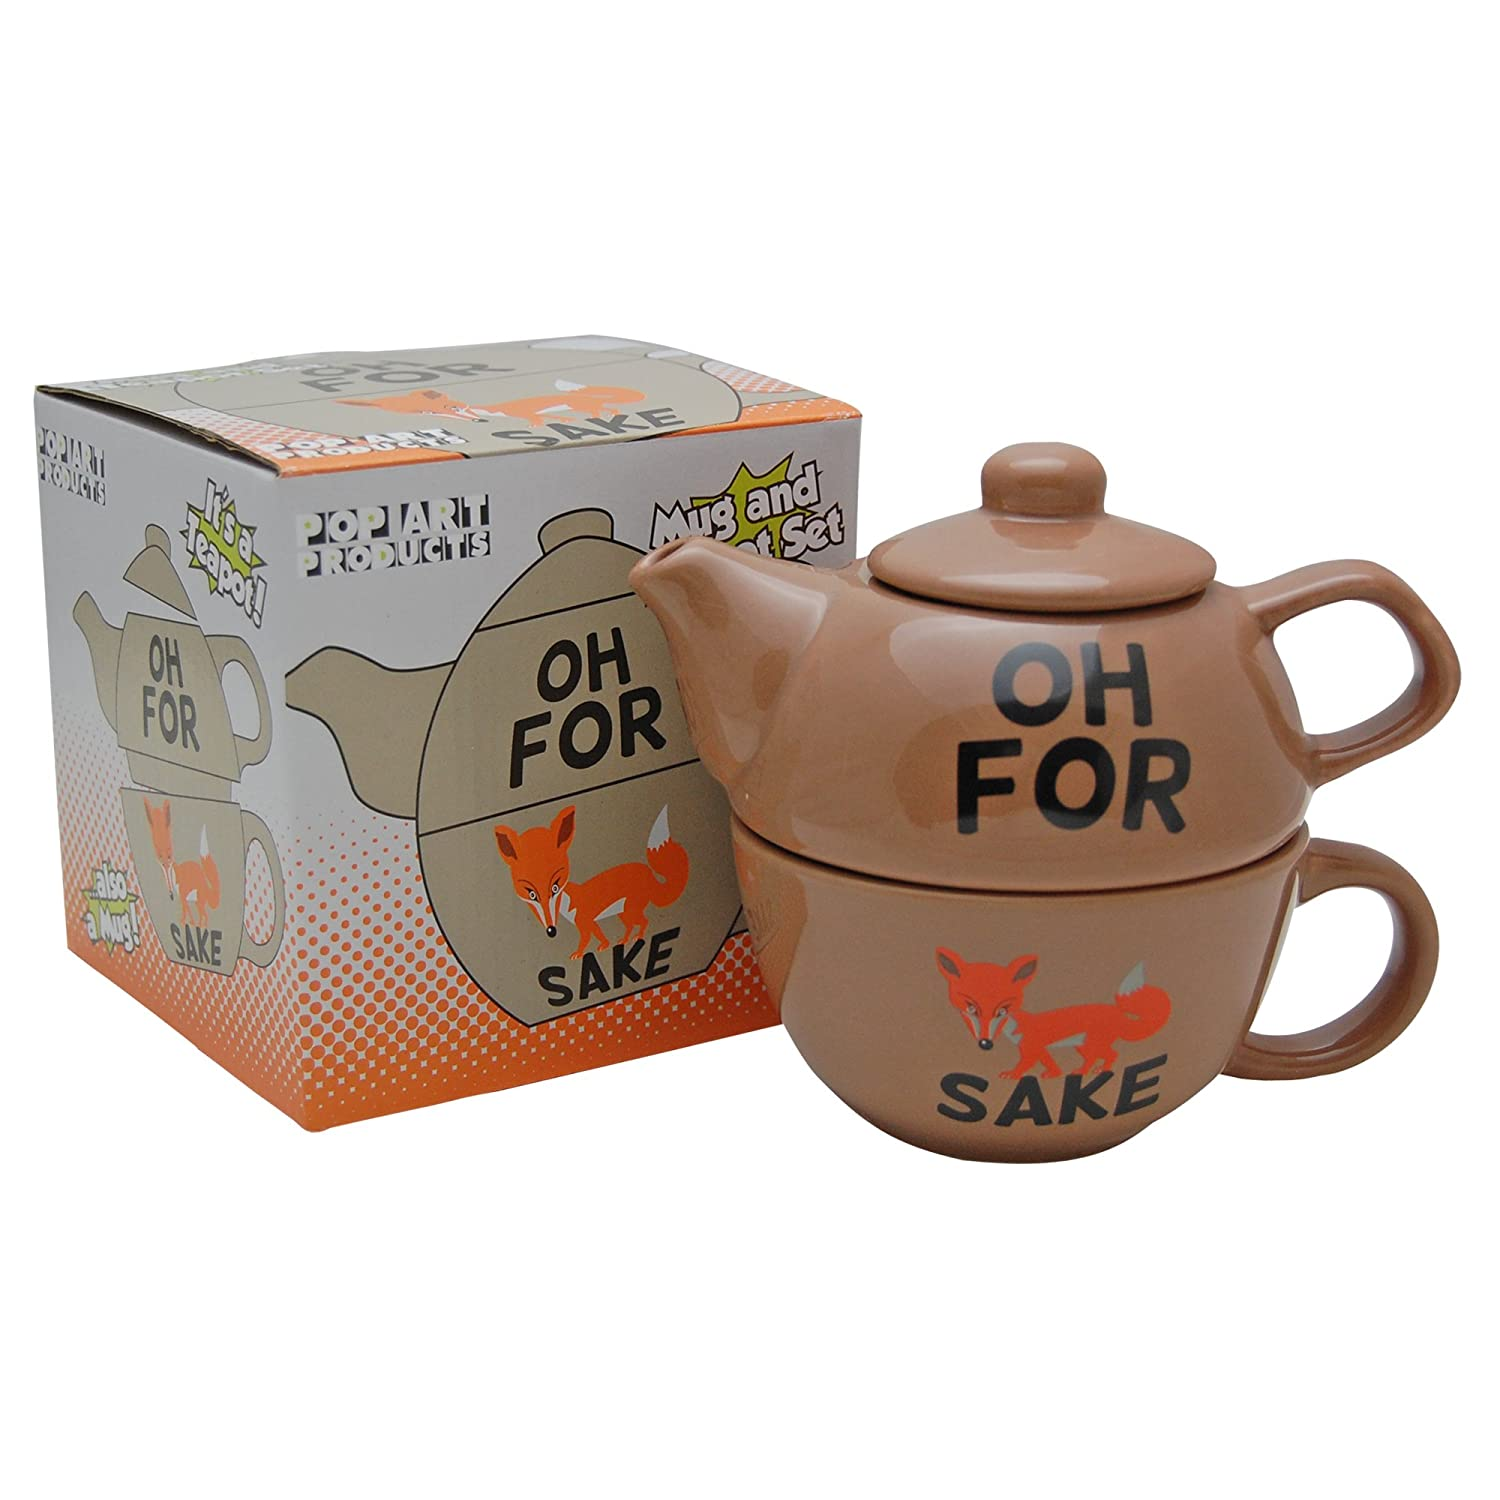 FOR FOX SAKE TEAPOT FOR ONE - Novelty Tea Pot and Cup Set - Funny Saying Profanity Visual Pun BROWN Pop Art Products